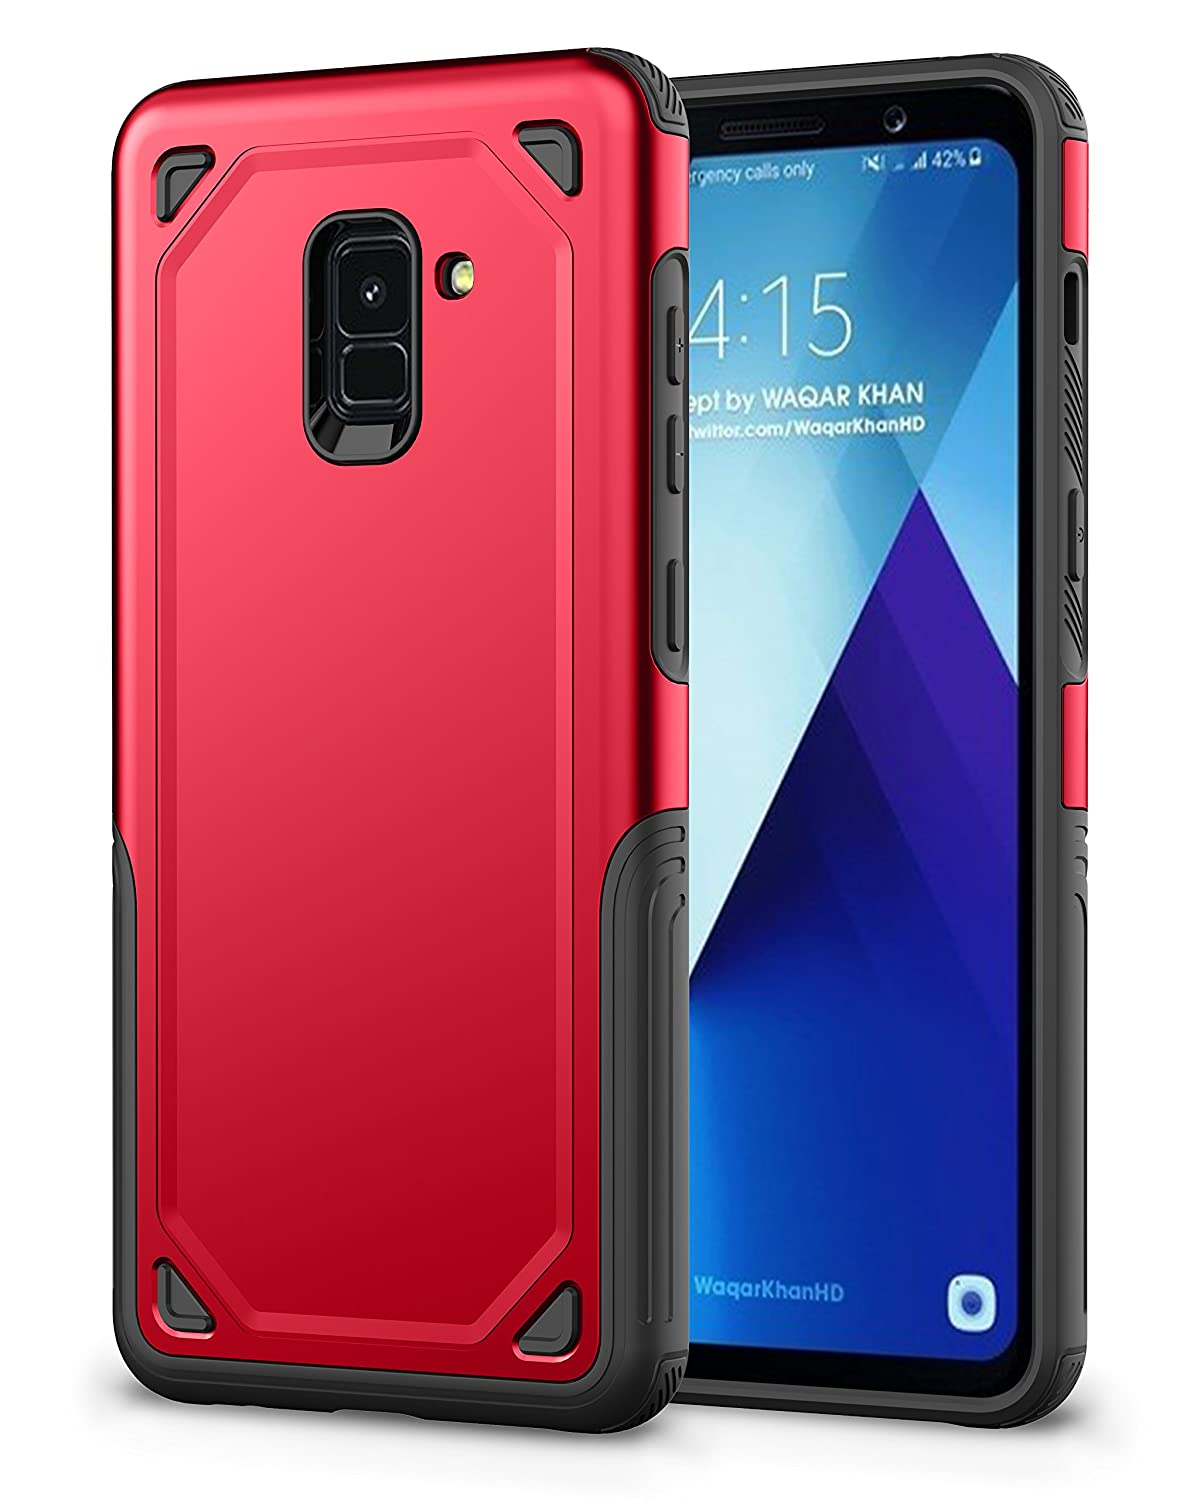 Galaxy A8 2018 Case, Rugged Slim Dual Layer Flexible TPU + Hard PC Armor Slip Hybrid Case for Samsung Galaxy A8 2018 (Gray) Bestfitshop